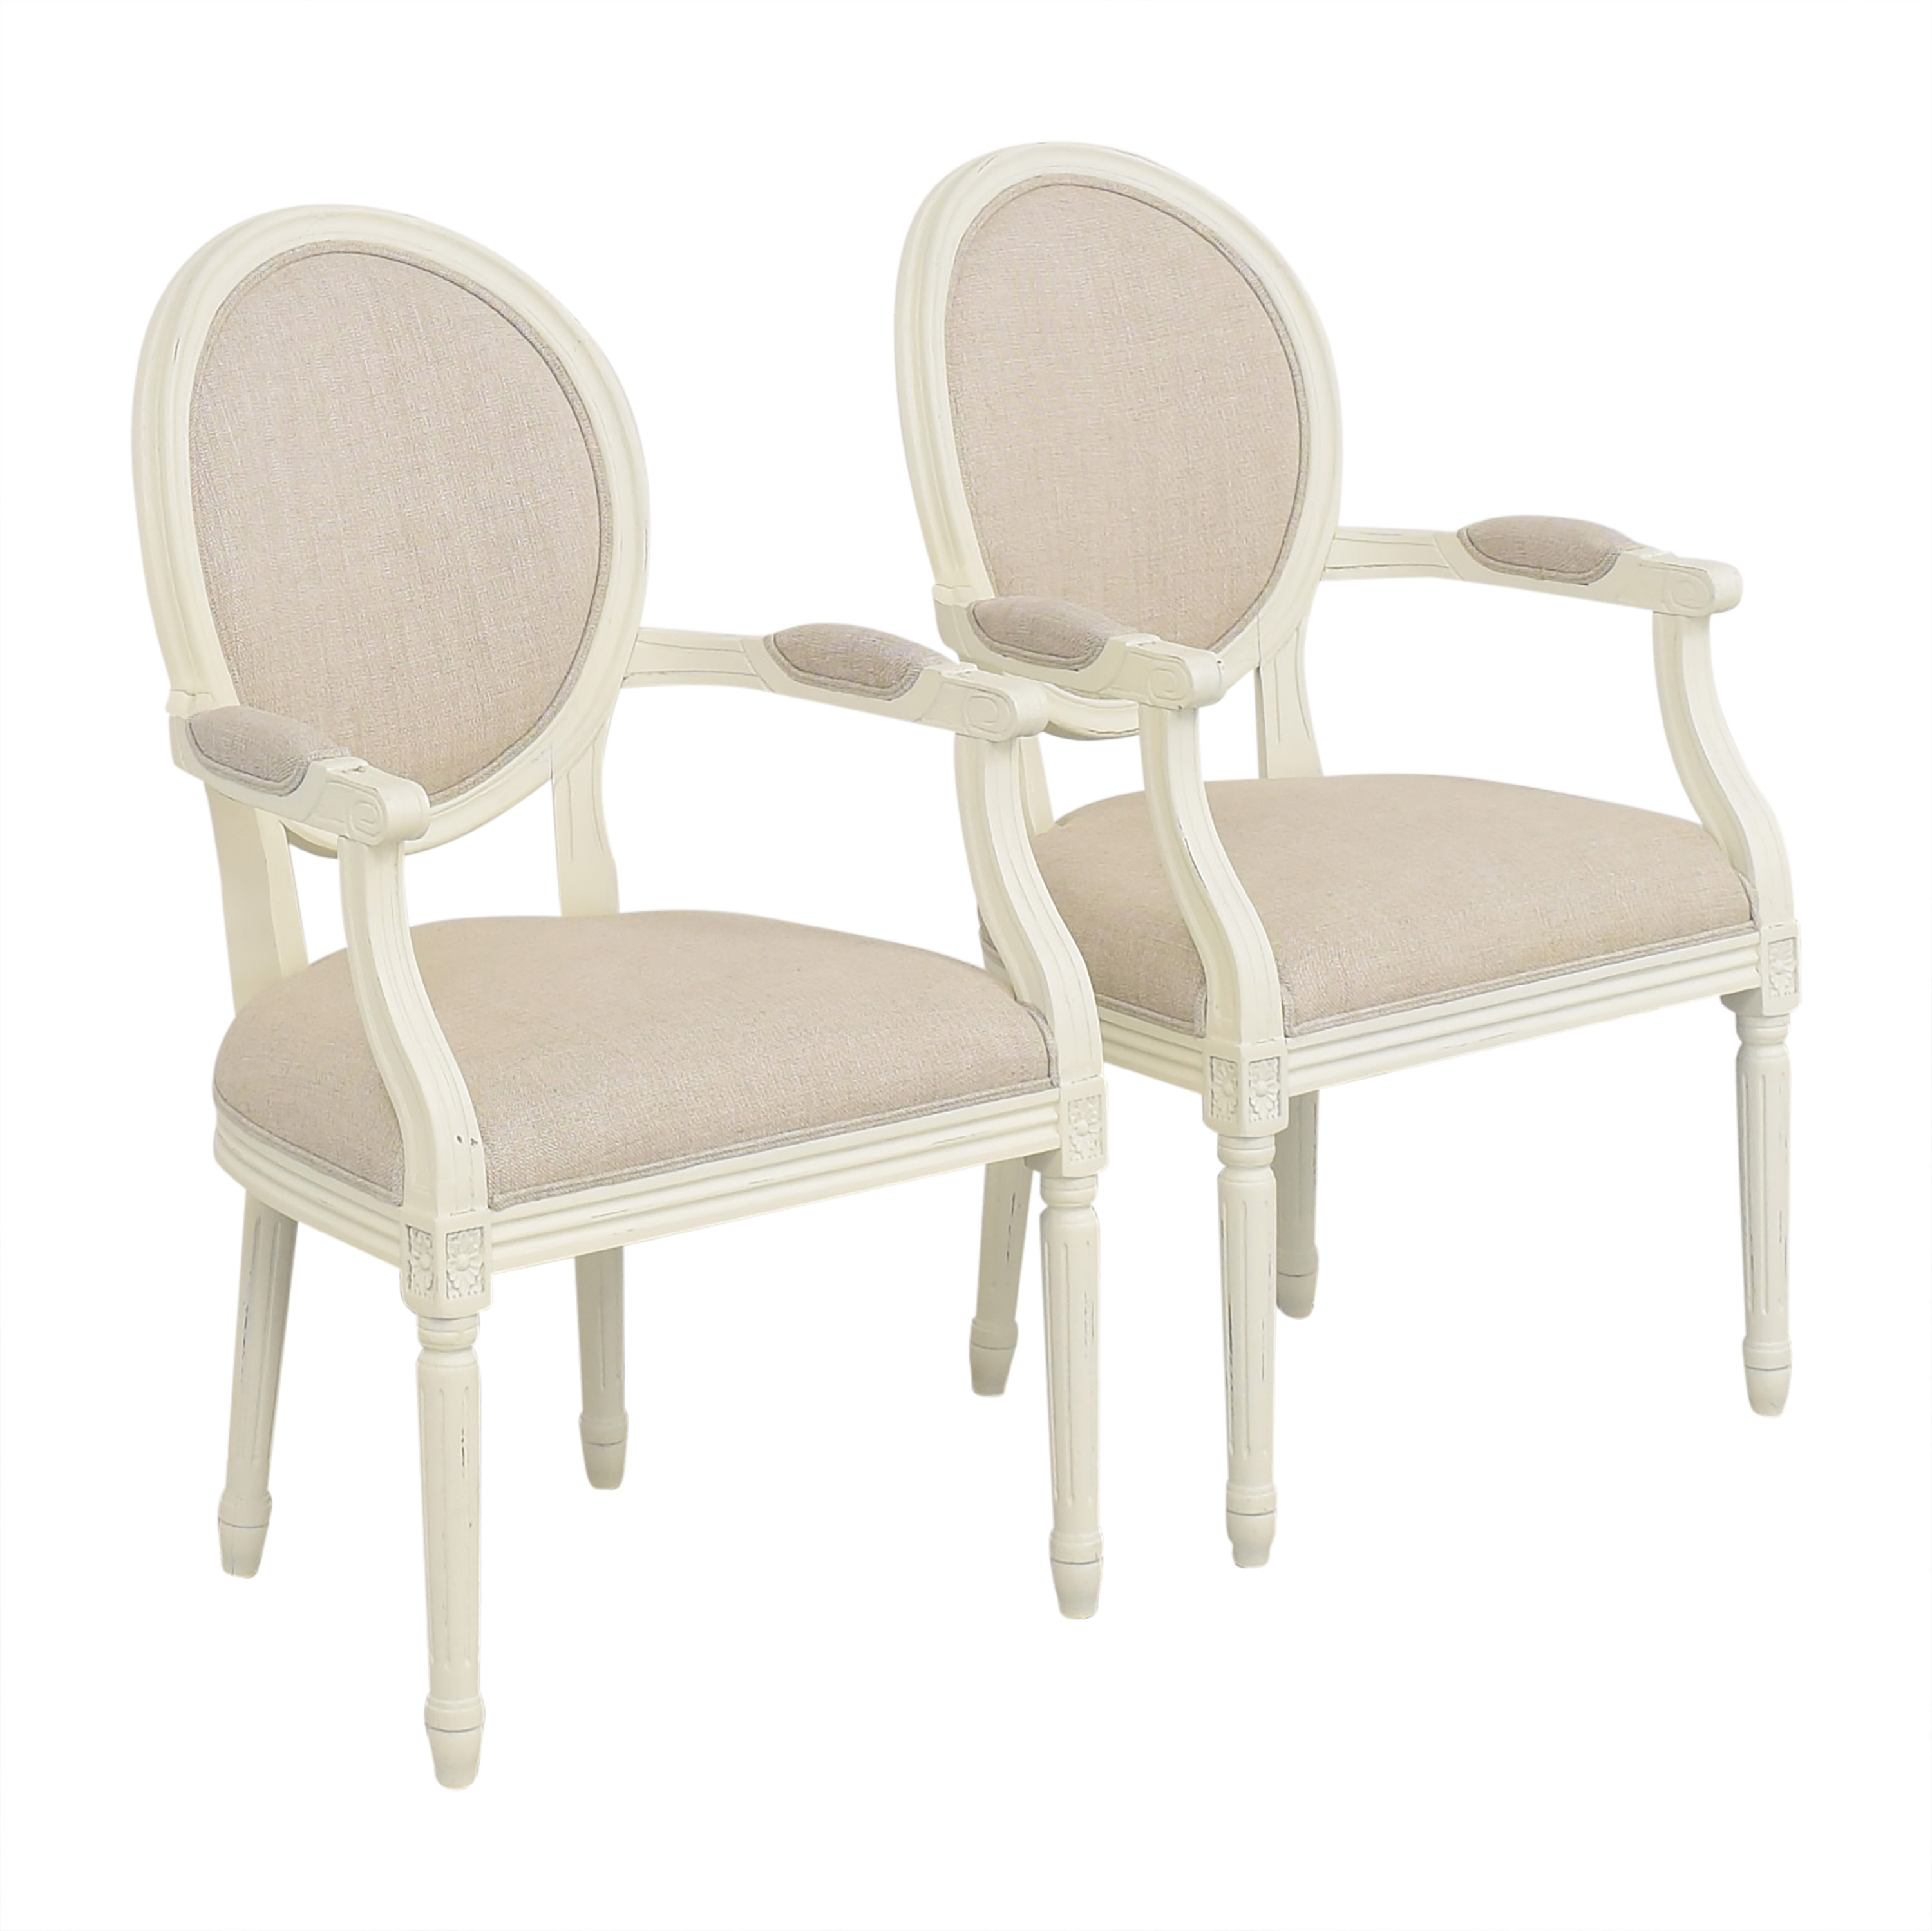 Restoration Hardware Restoration Hardware Vintage French Round Armchairs used